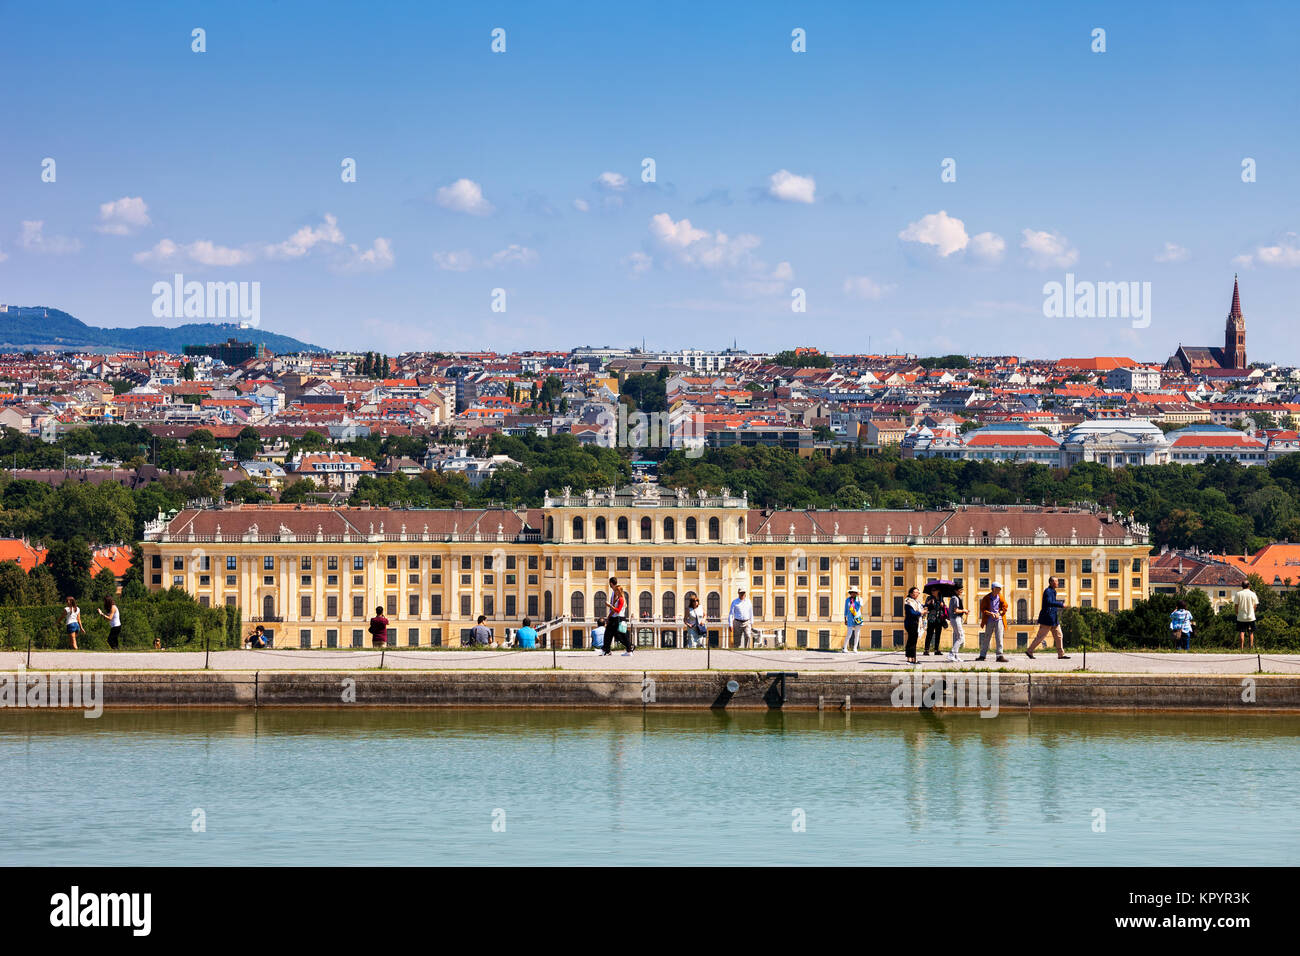 Schonbrunn Palace, imperial summer residence Baroque style architecture, city skyline of Vienna, Austria, Europe Stock Photo